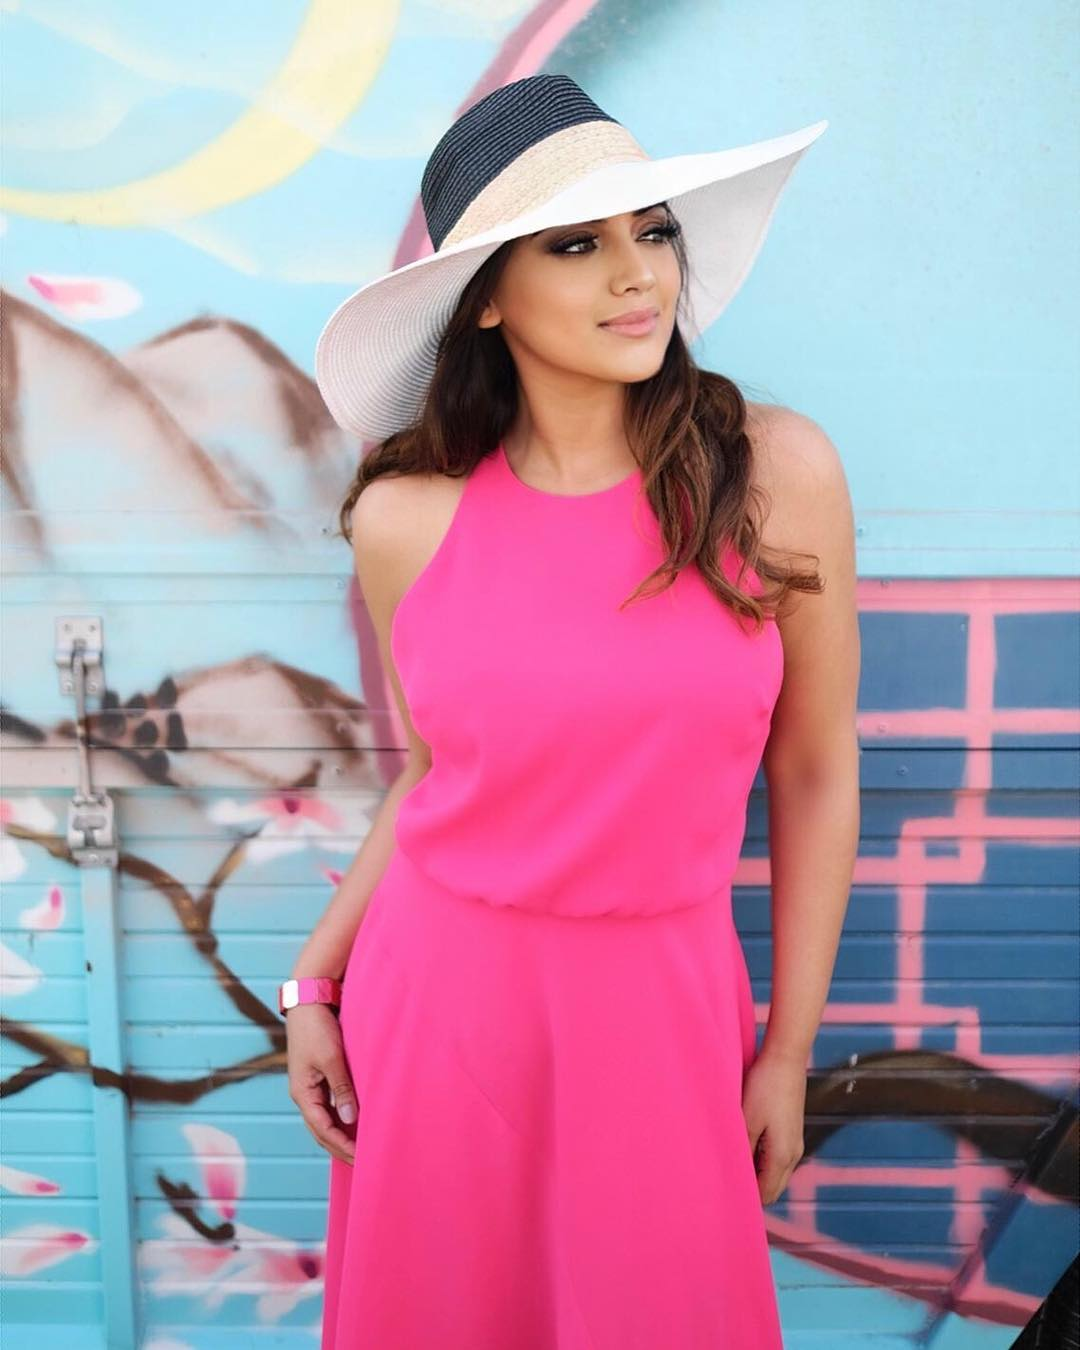 Sleeveless Dress In Fuchsia And Wide-Brim Beach Hat 2020